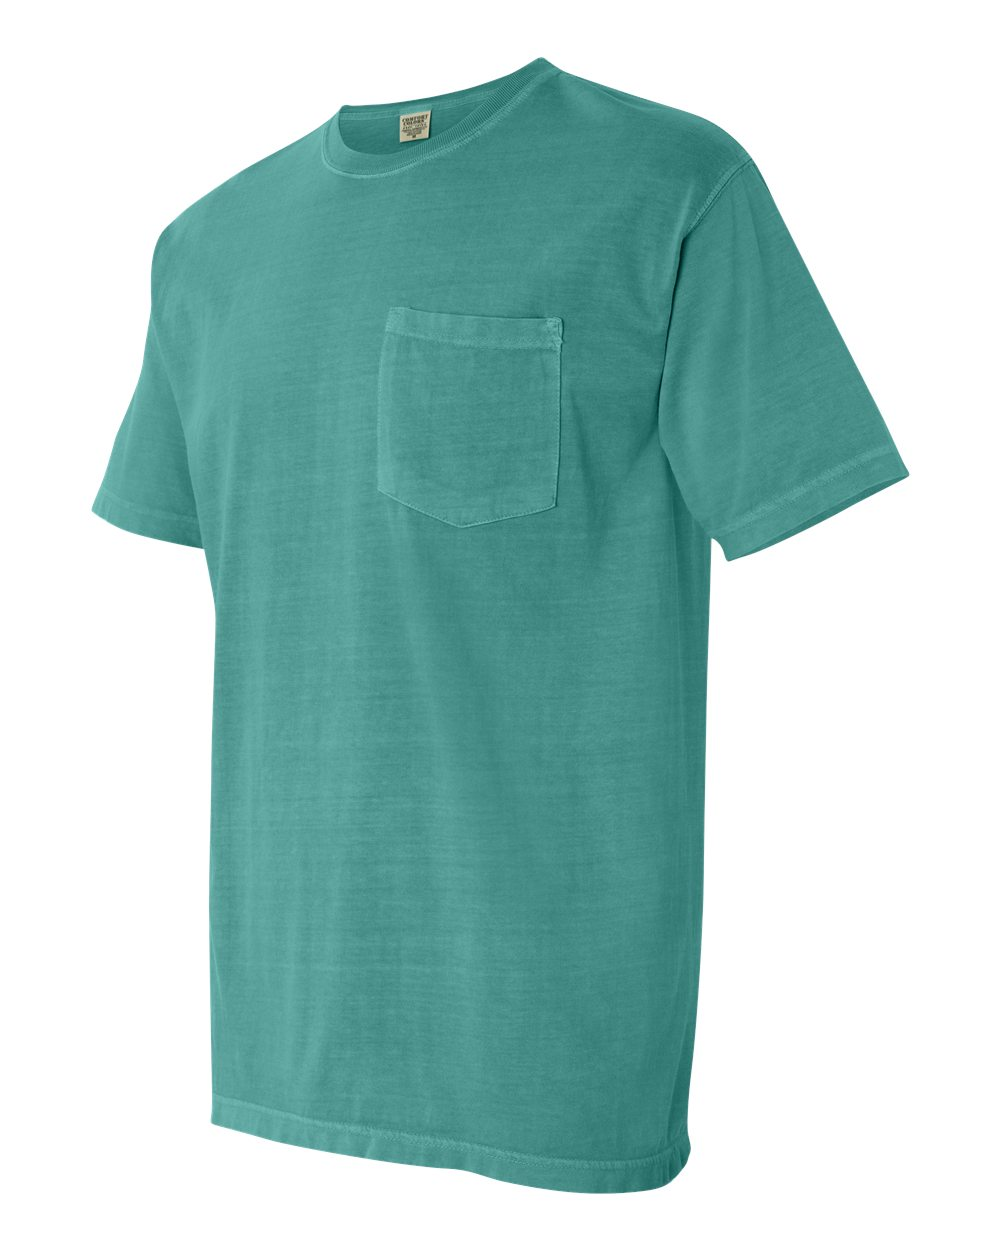 Comfort-Colors-Men-039-s-6-1-oz-Garment-Dyed-Pocket-T-Shirt-6030CC-S-3XL thumbnail 72